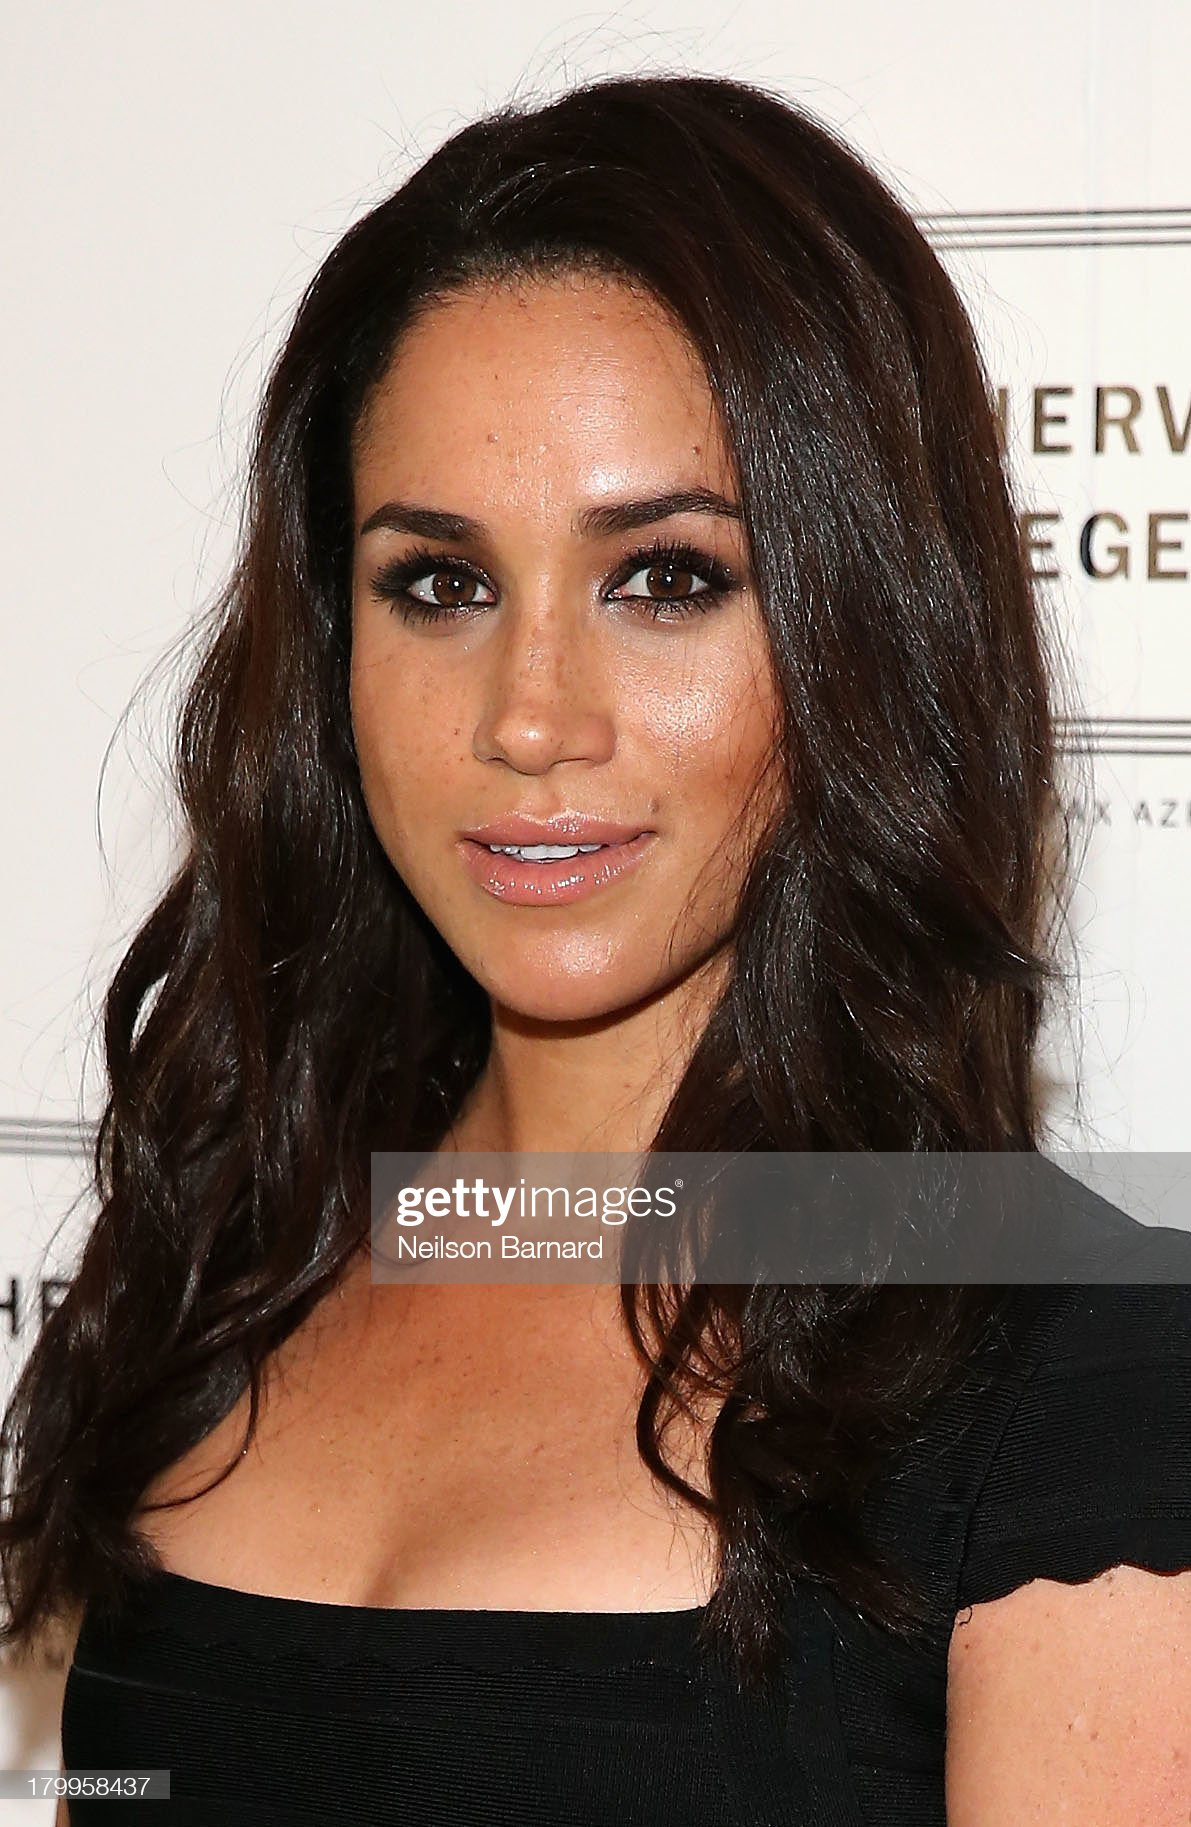 Meghan Markle - Página 2 Meghan-markle-poses-backstage-at-the-herve-leger-by-max-azria-fashion-picture-id179958437?s=2048x2048